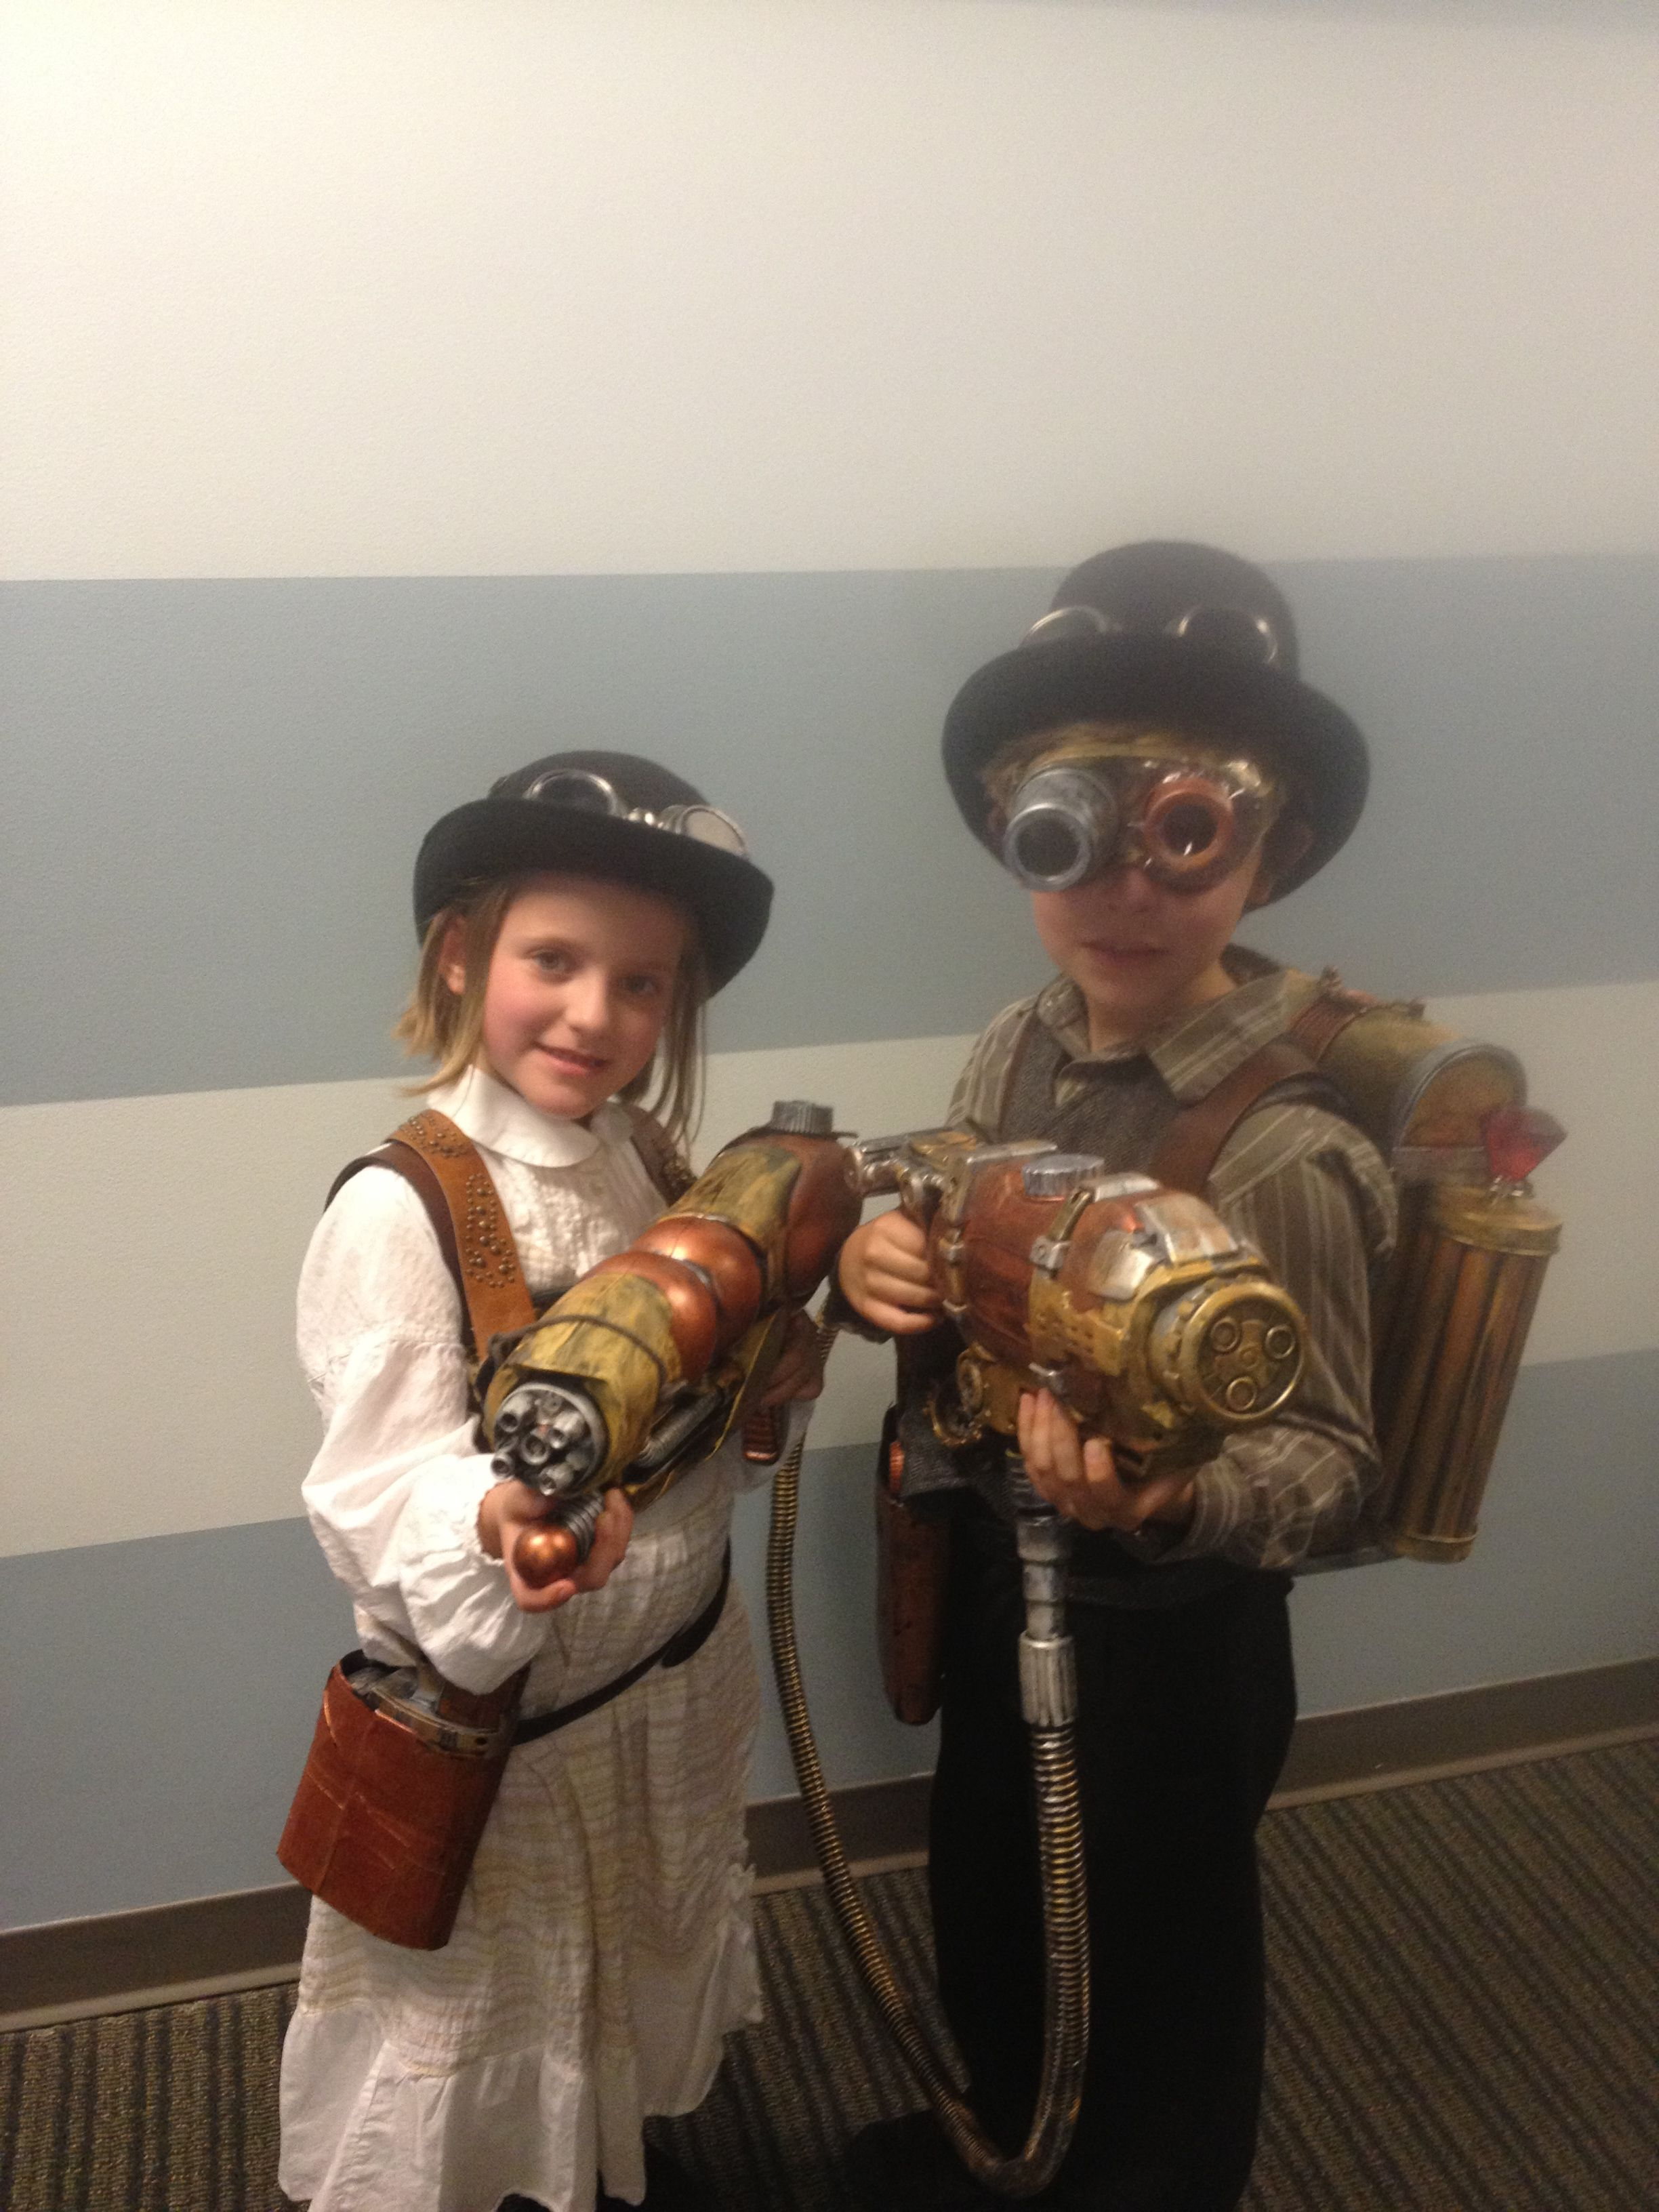 Halloween Could Find Steampunk Costumes For Kids So